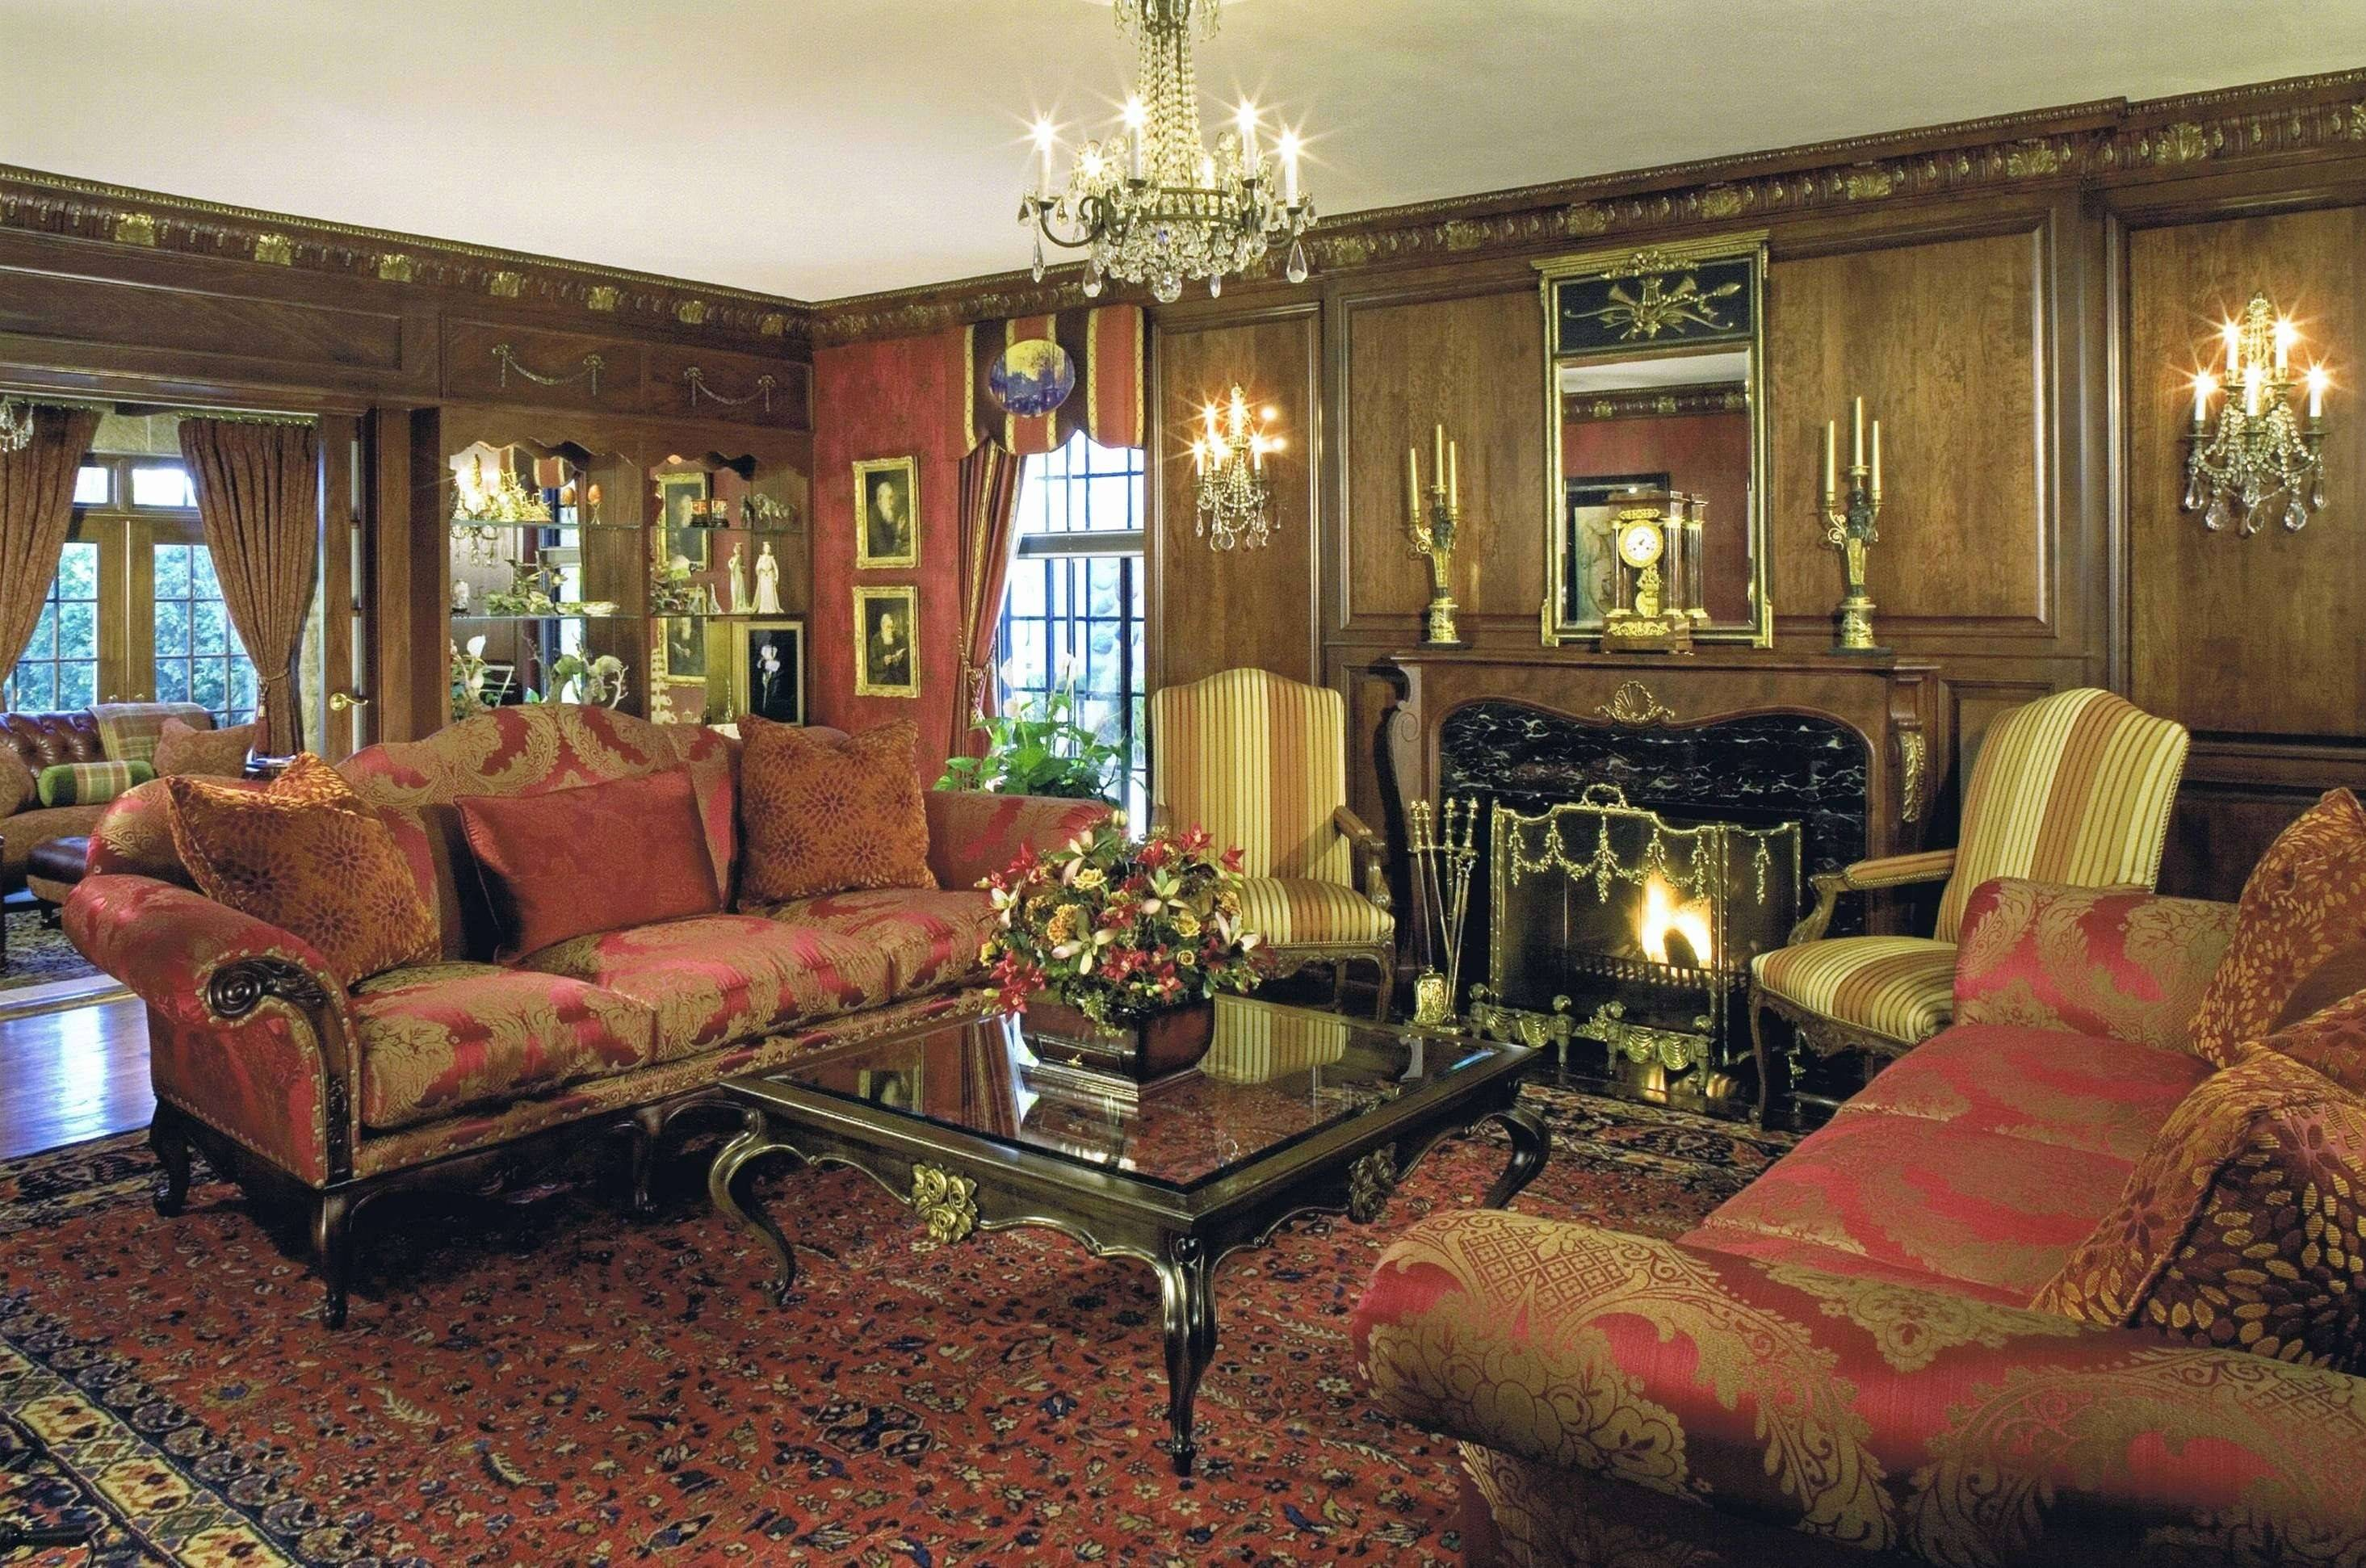 home interior photos drawing room house with interior design best living room traditional decorating ideas awesome shaker chairs 0d